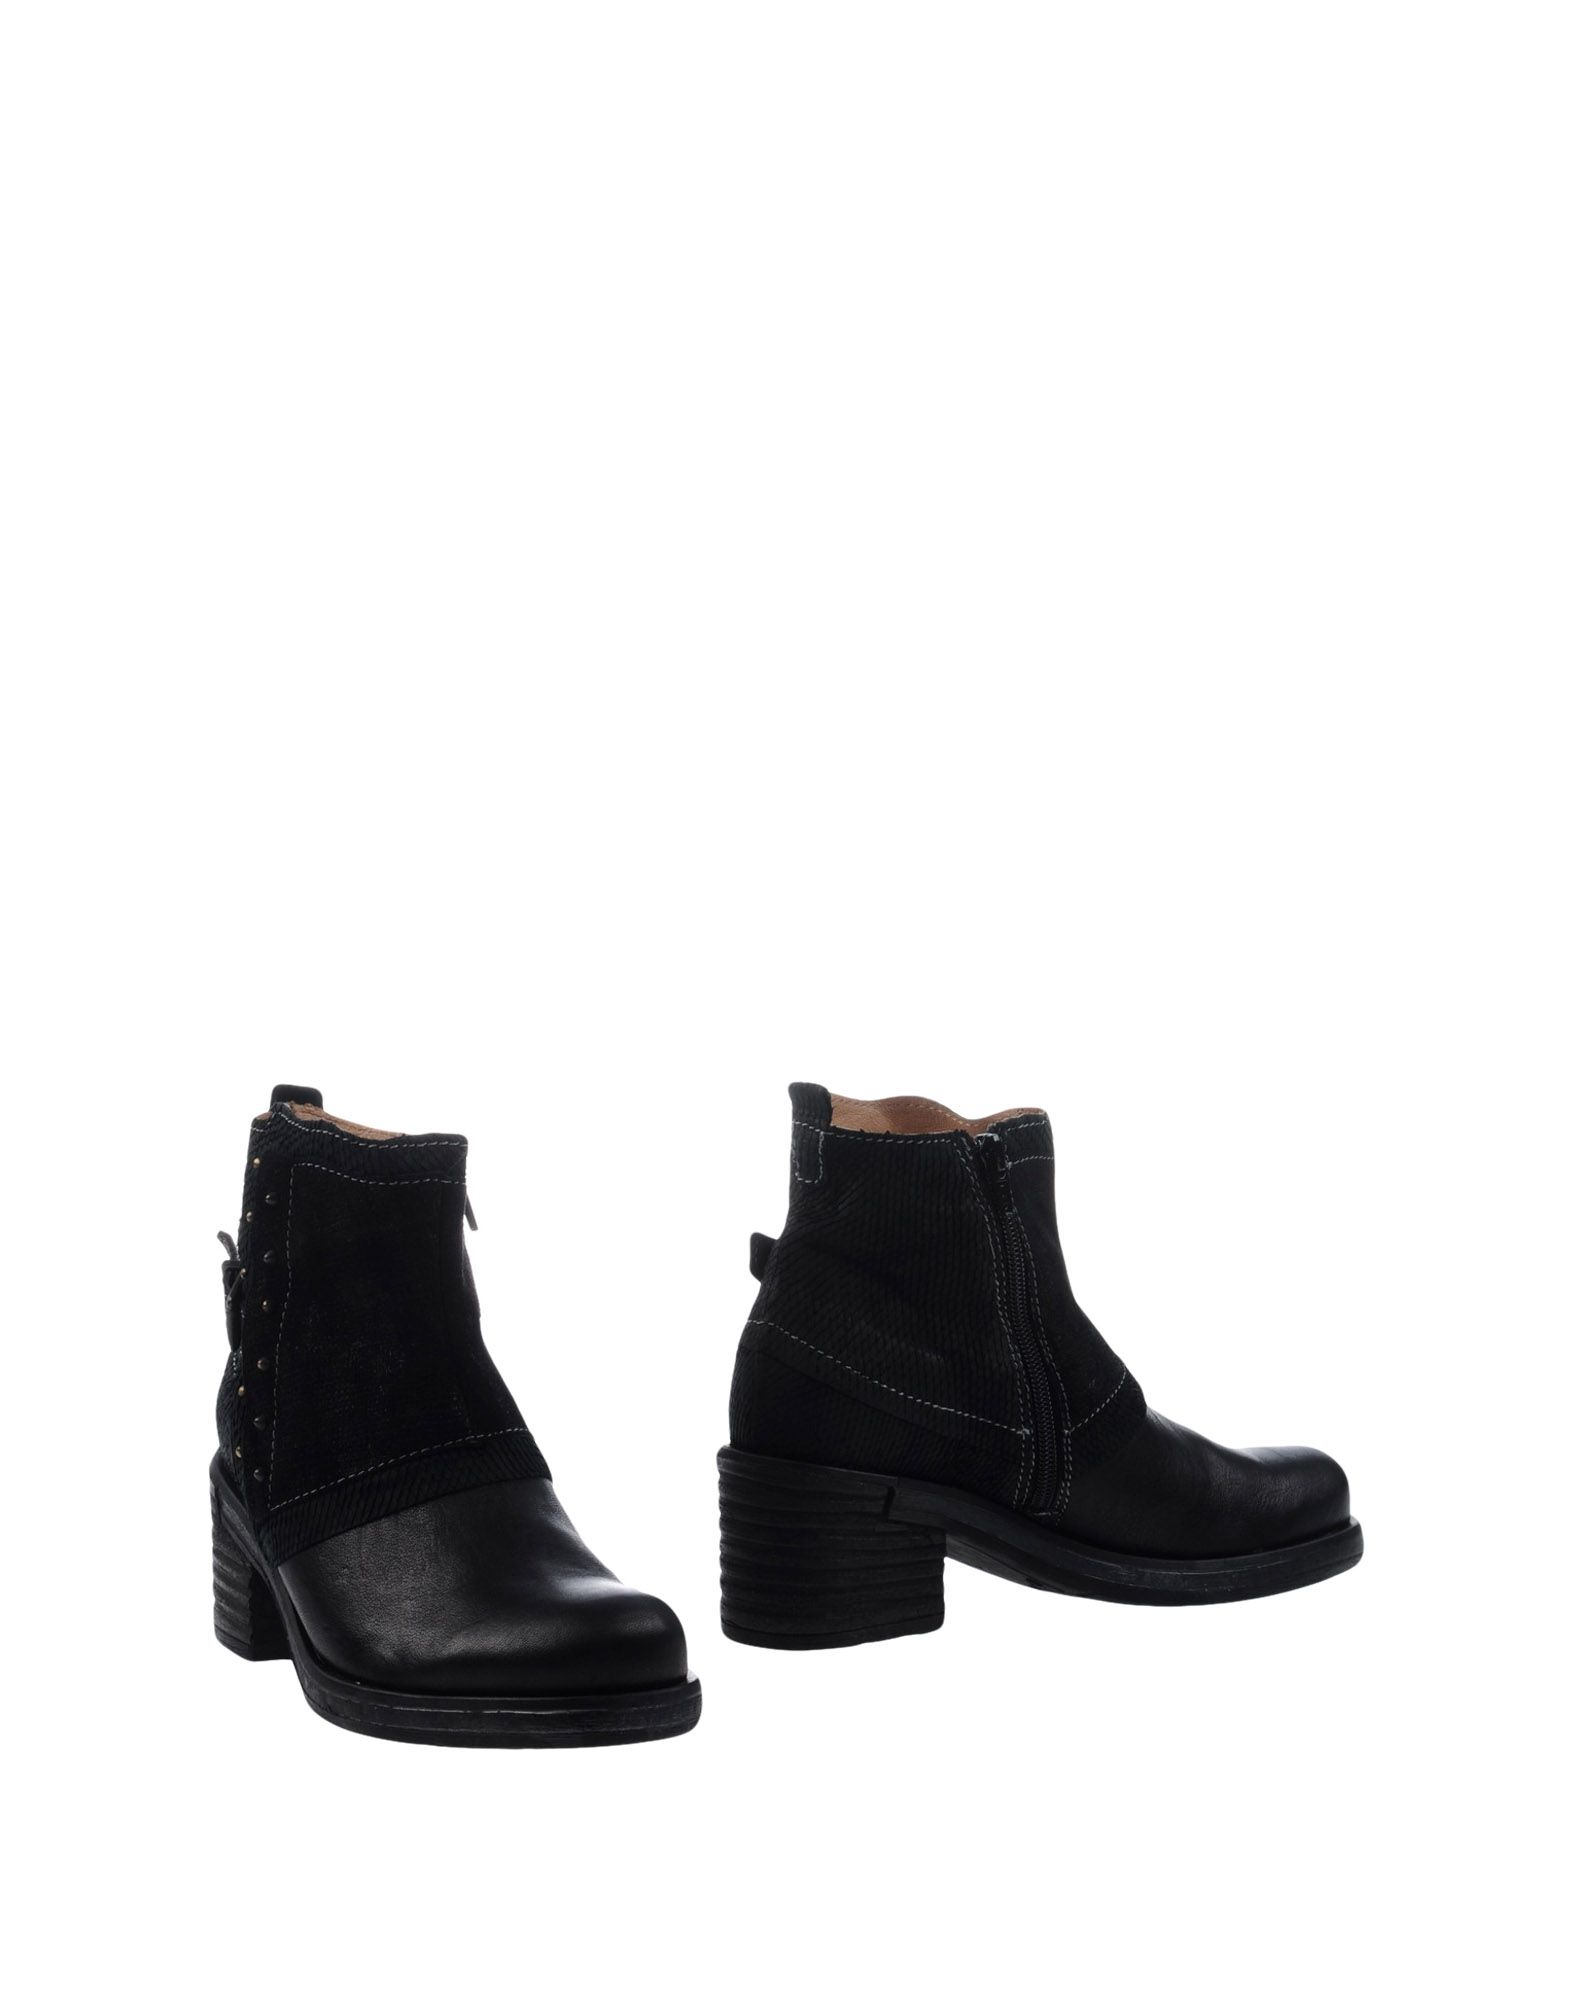 Bottine Clocharme Femme - Bottines Clocharme sur